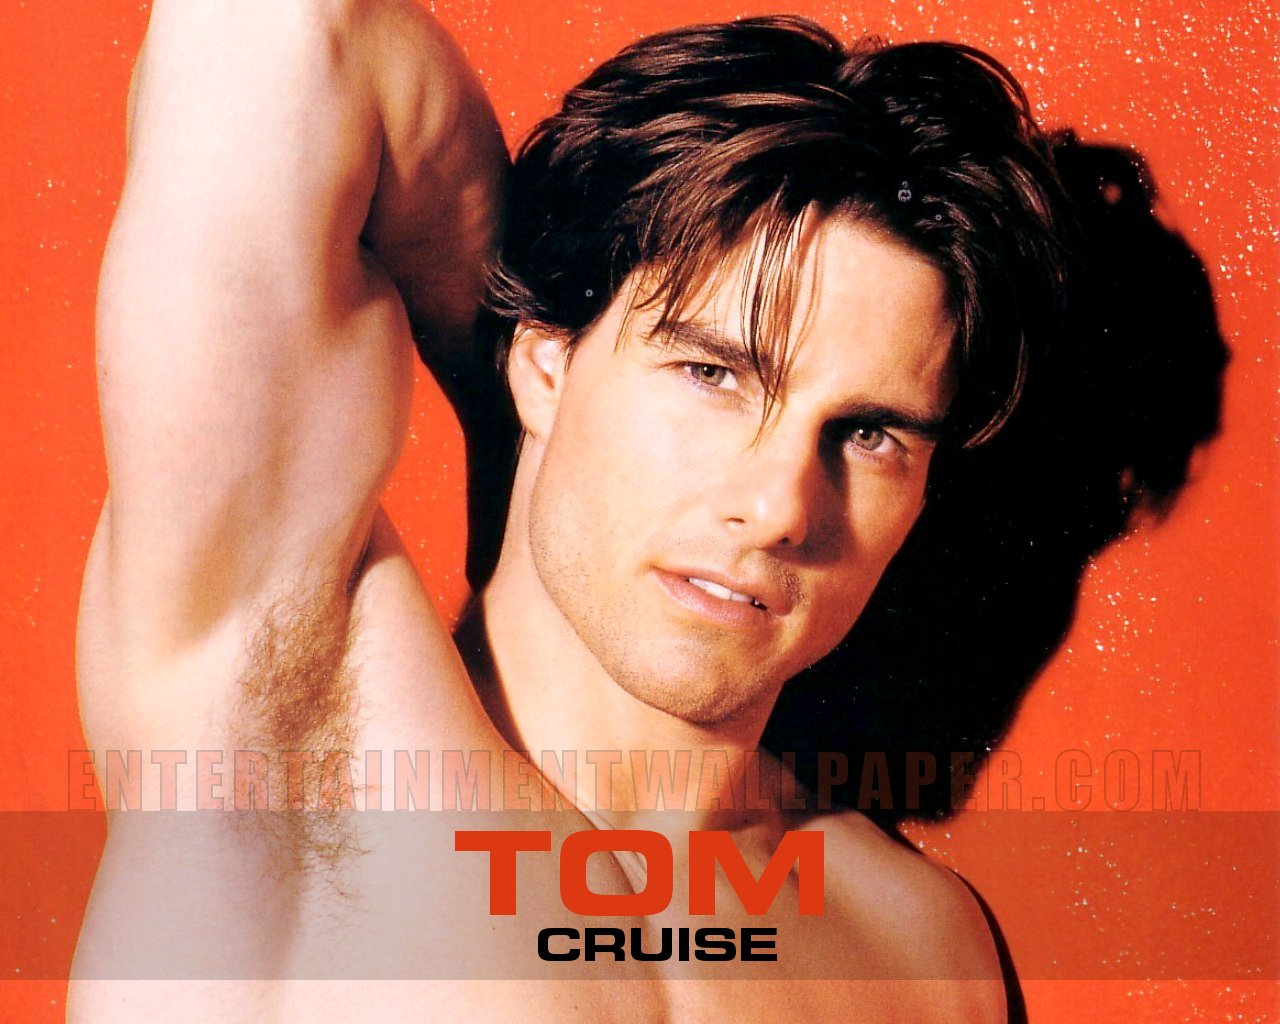 Tom Cruise Muscles Tom Cruise Nice Smile Tom Cruise In Hollywood Movie